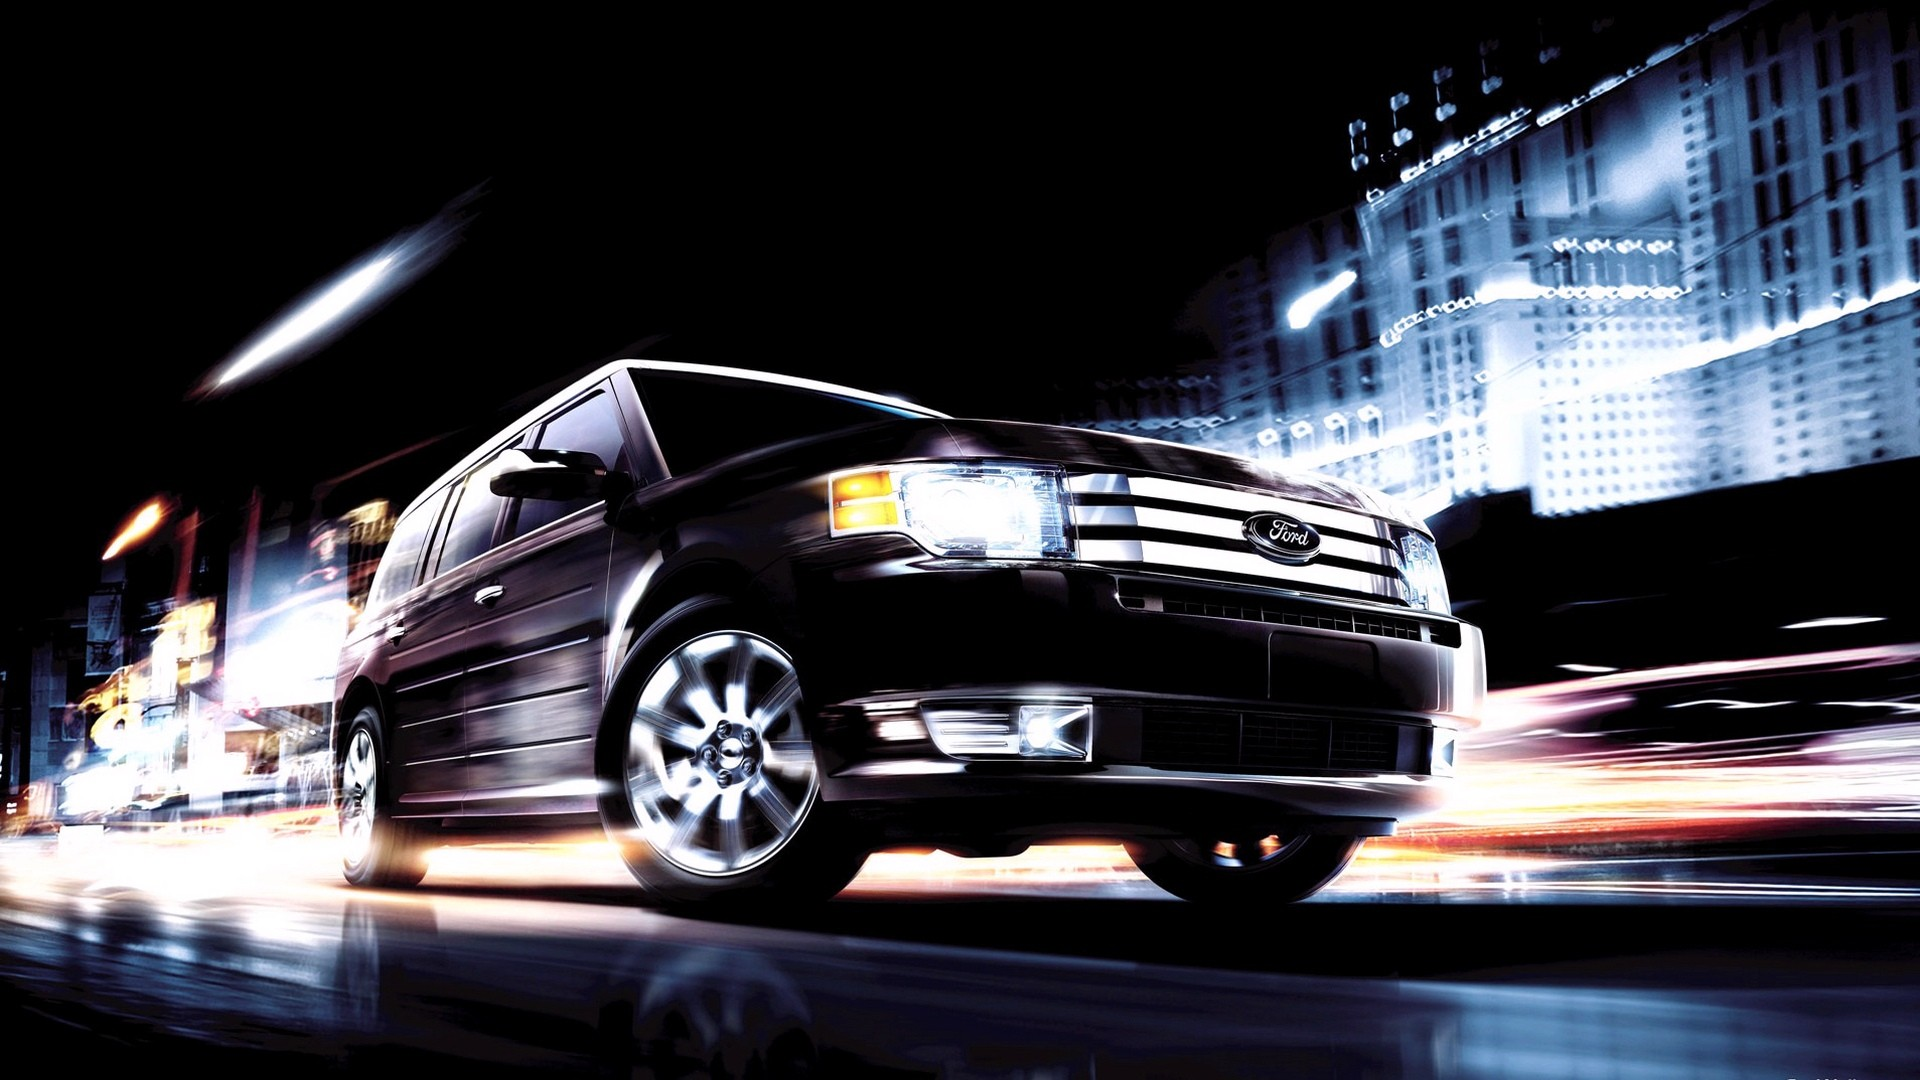 American SUV Ford Flex, 2012 issue